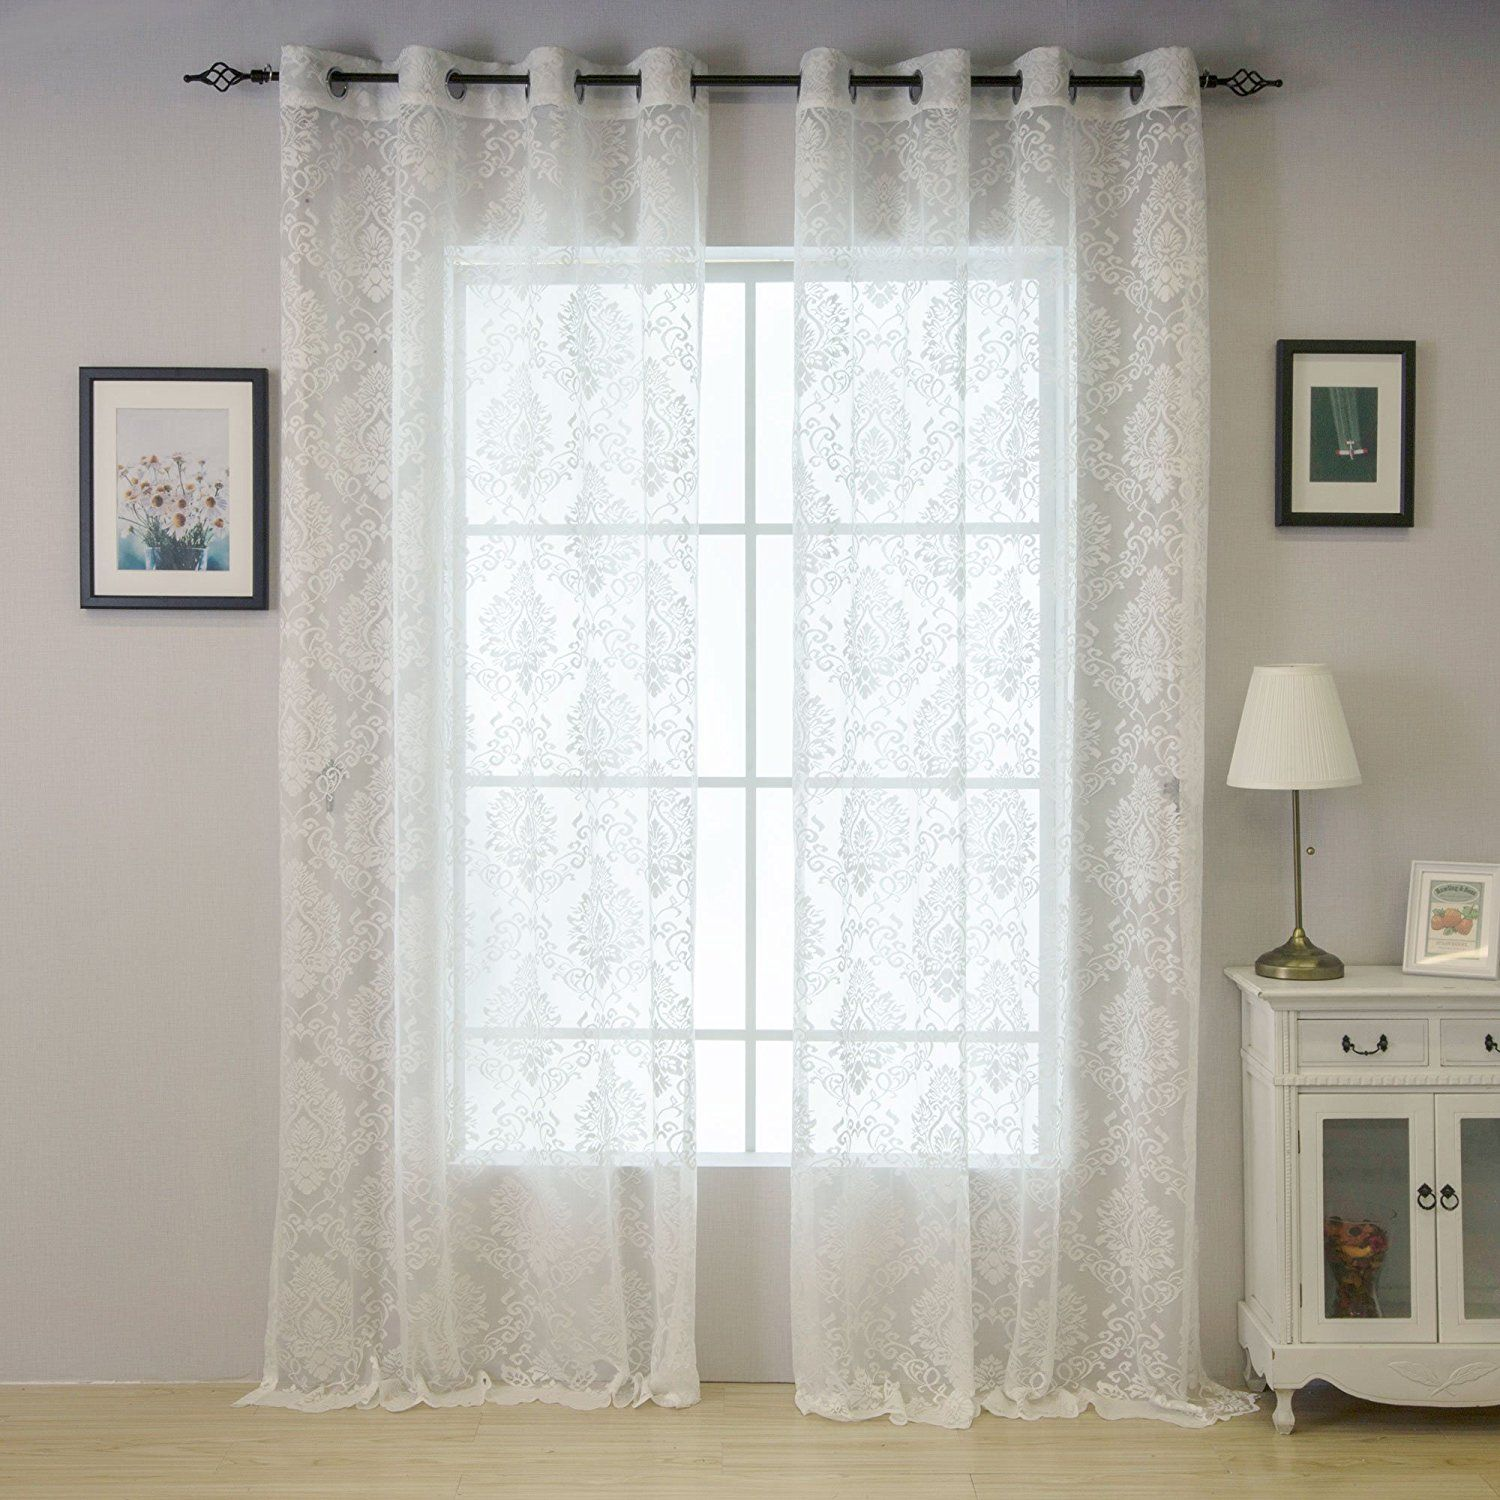 Valea Home Grommet Top Lace Window Curtain Drape for Living Room, 54 ...